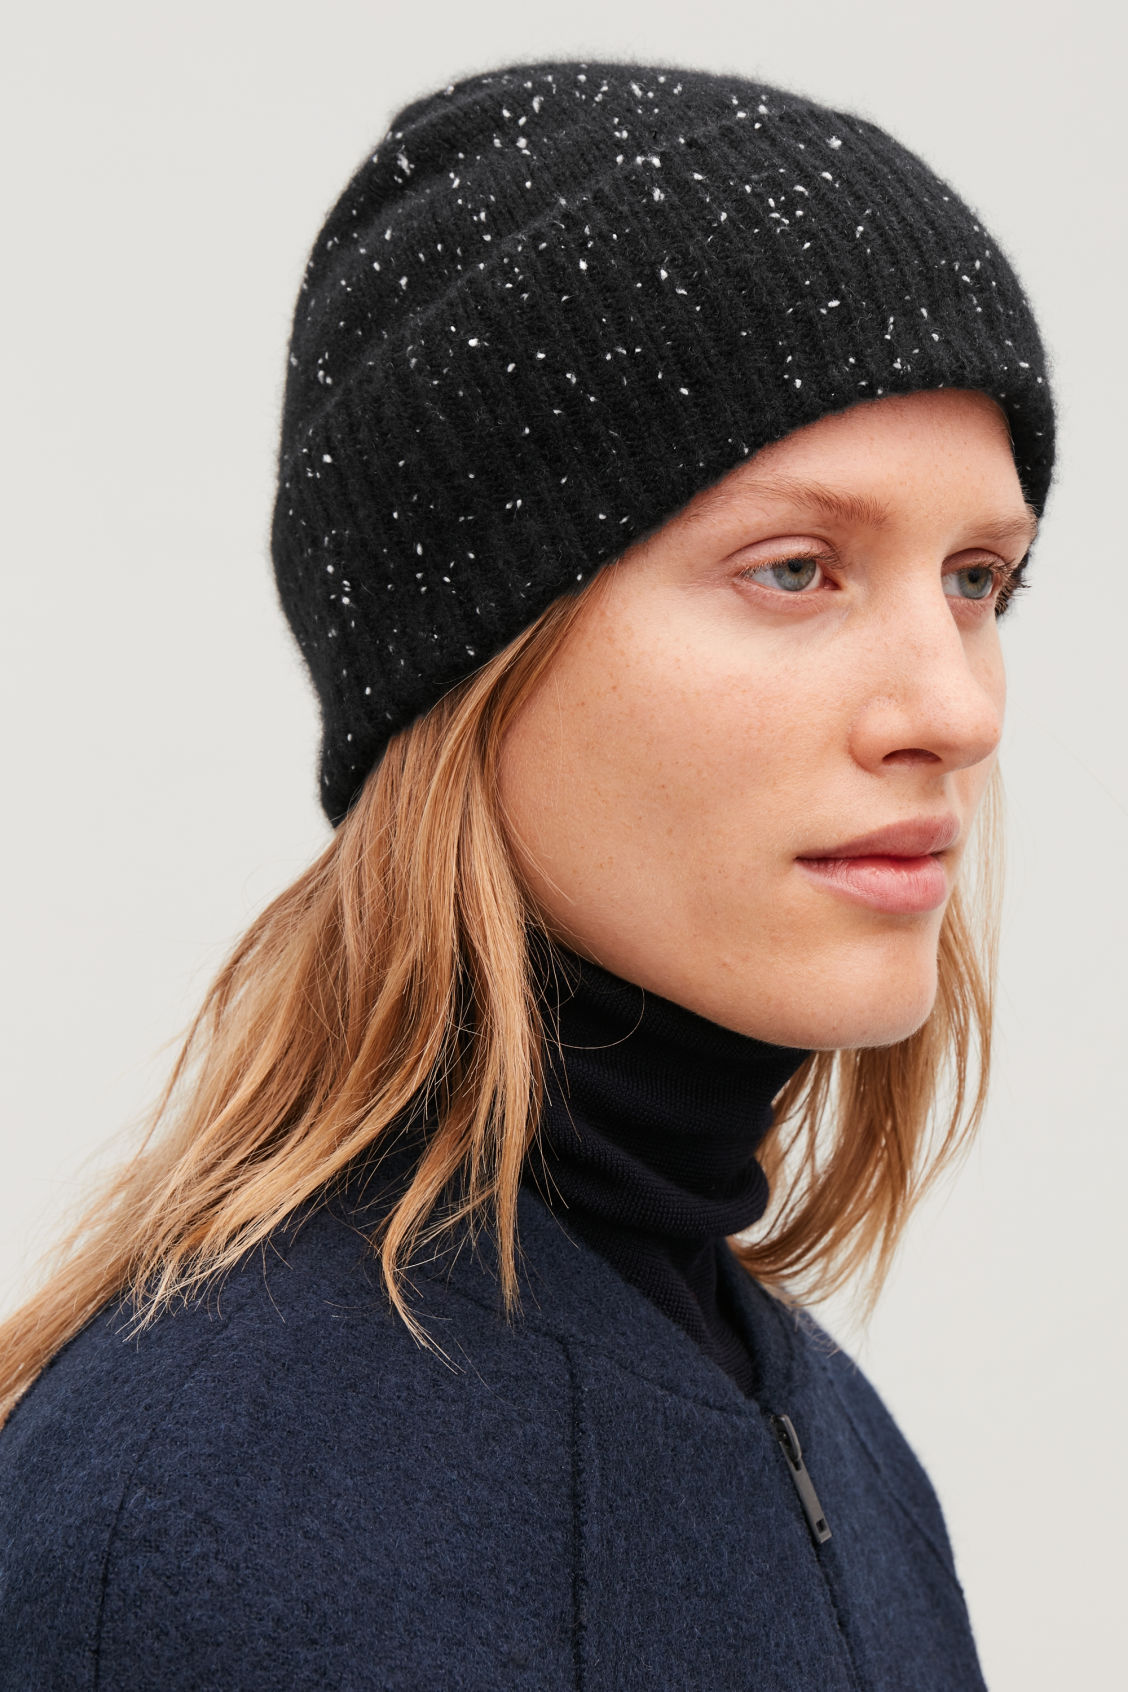 SPECKLED CASHMERE HAT - Black   white - Cashmere - COS 7279df859a3